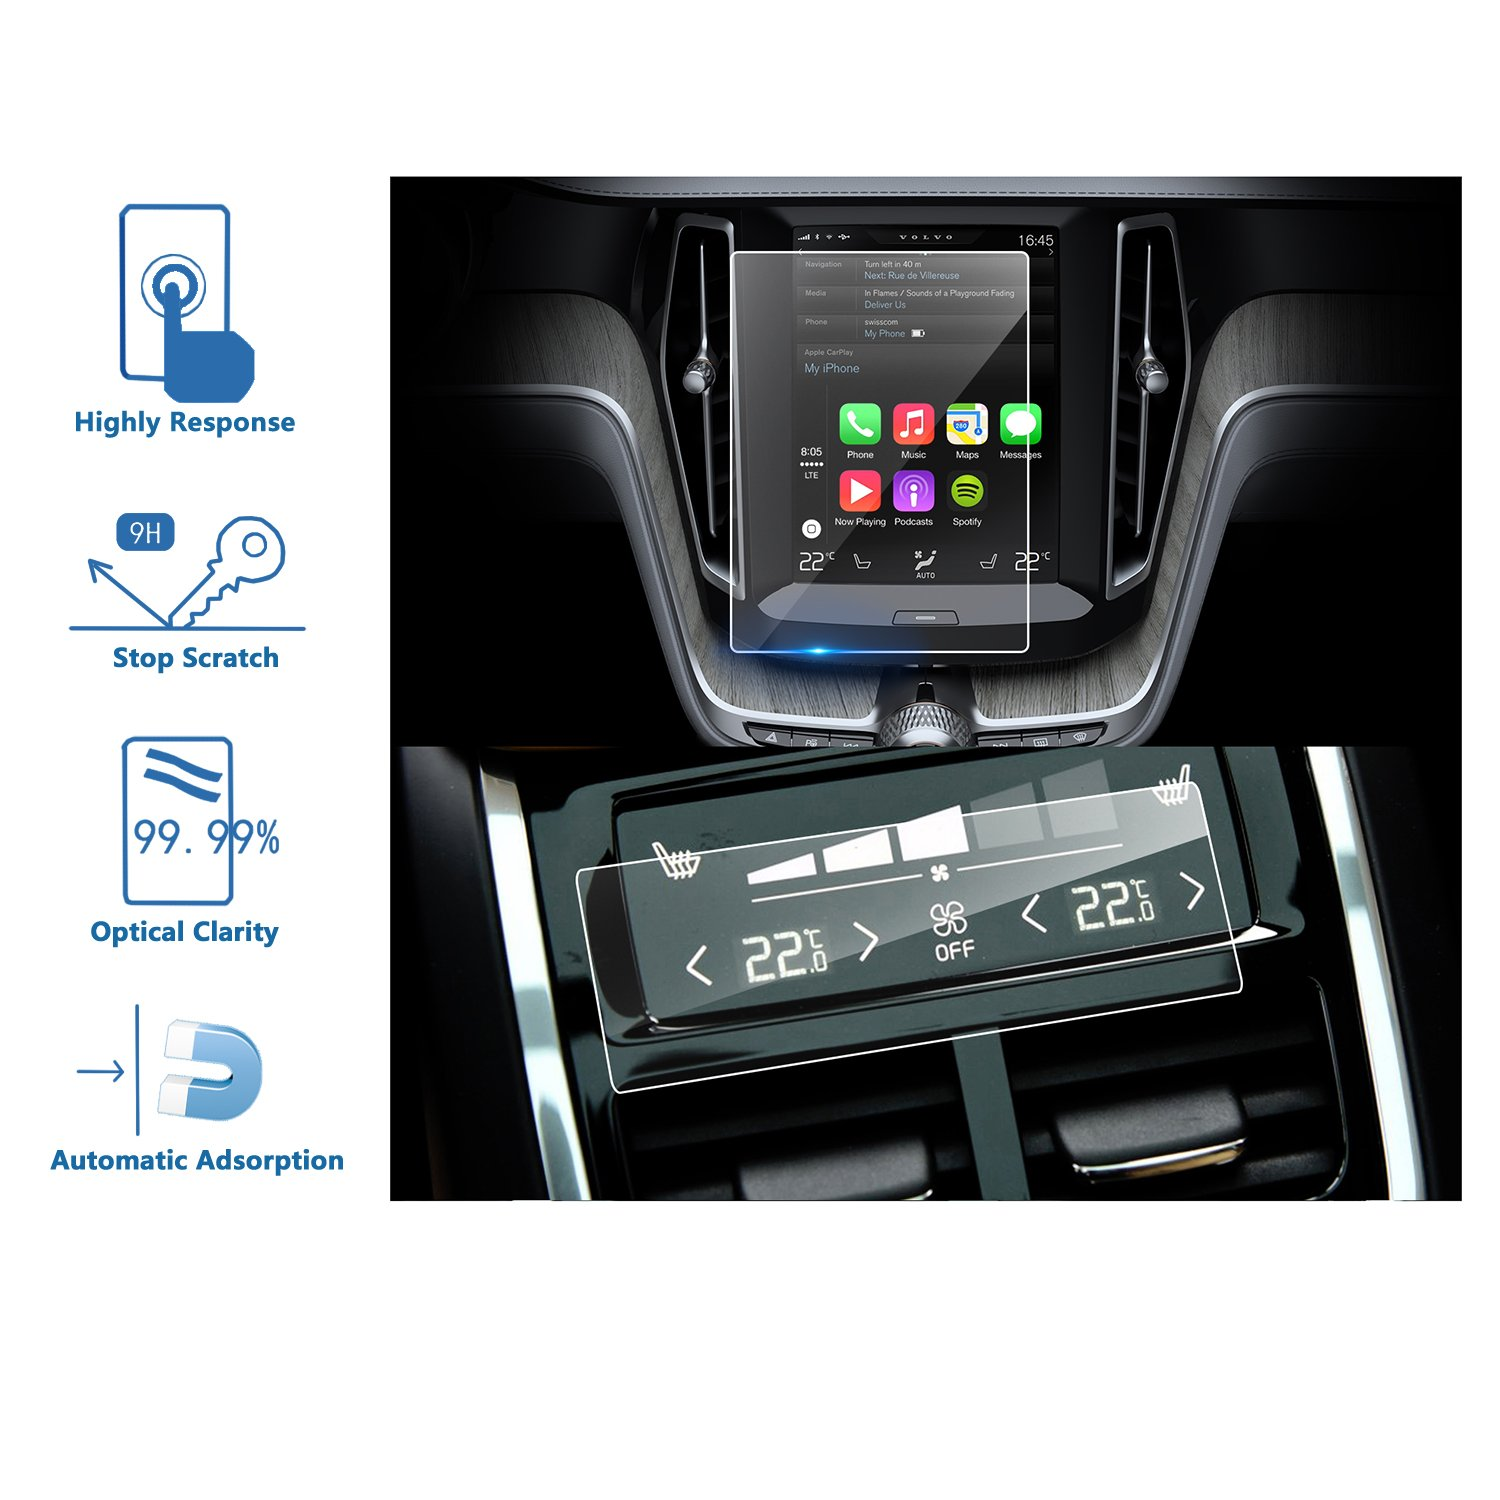 LFOTPP Volvo XC60 2018 2PCS Car Navigation and Air Conditioning Display Screen Protector, Clear Tempered Glass Center Touch Screen Protector Against Scratch High Clarity